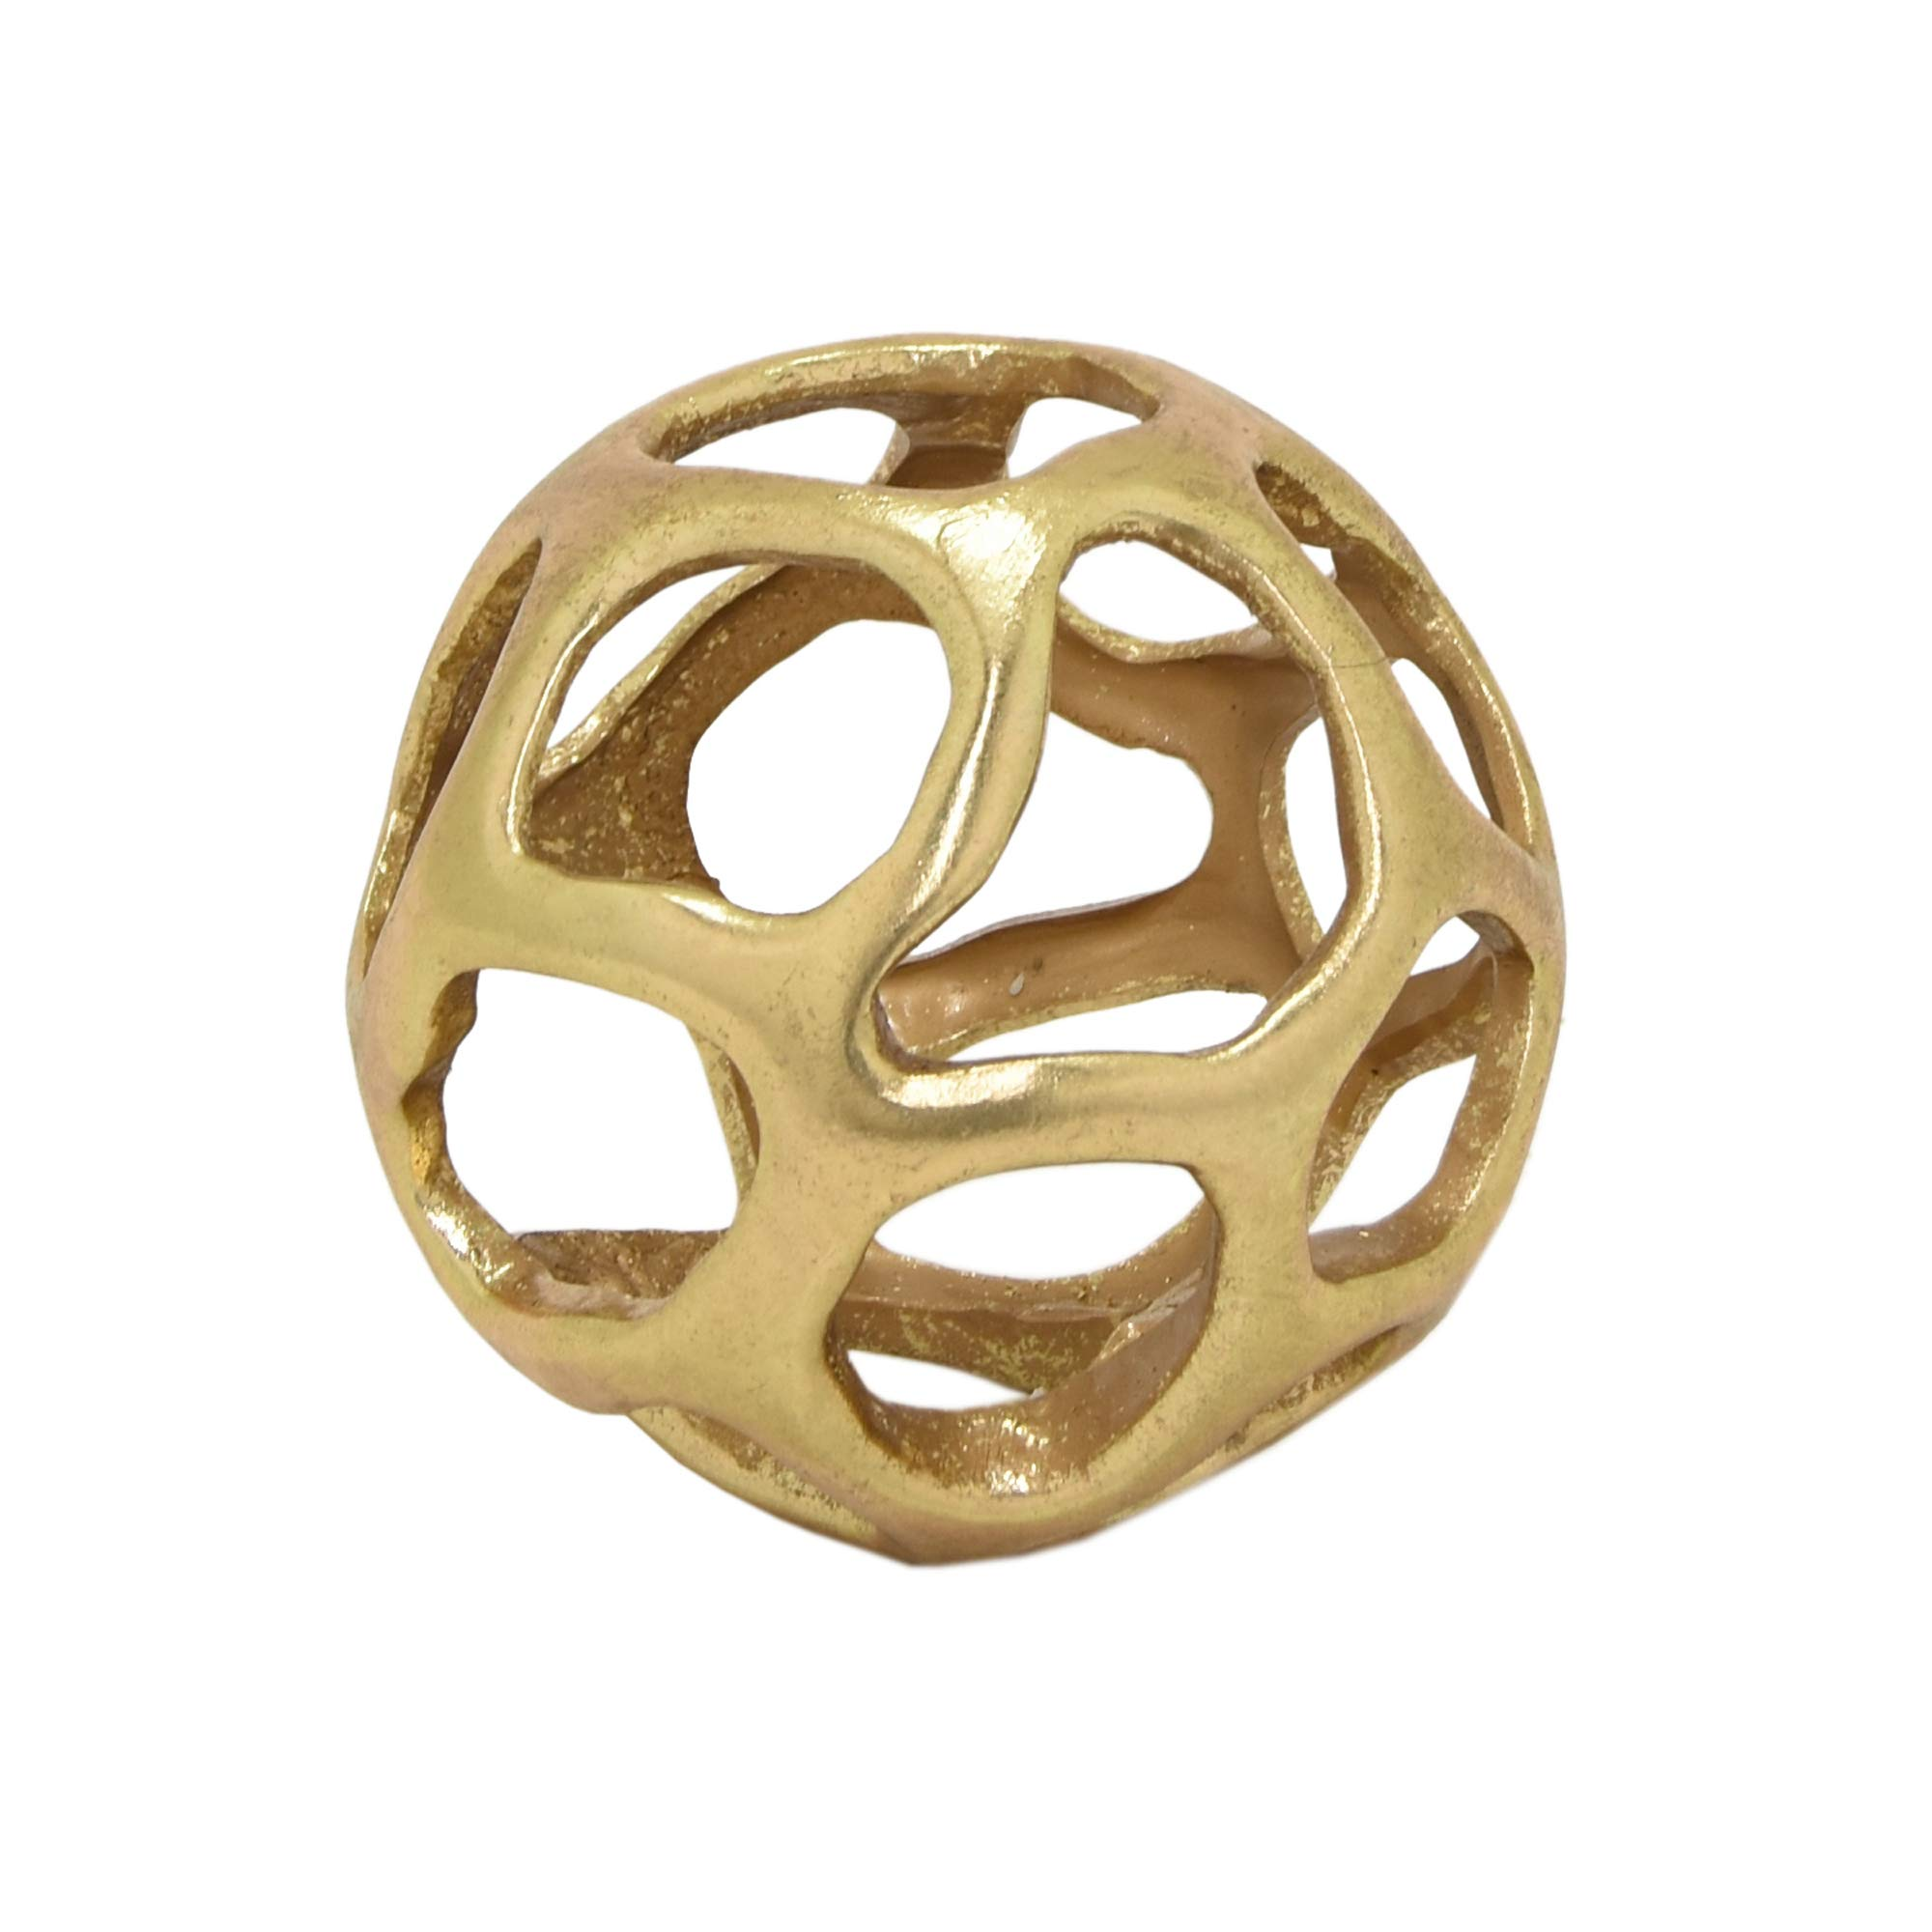 Three Hands 70968 5'' Gold-ORB Tabletop Decoration by Three Hands